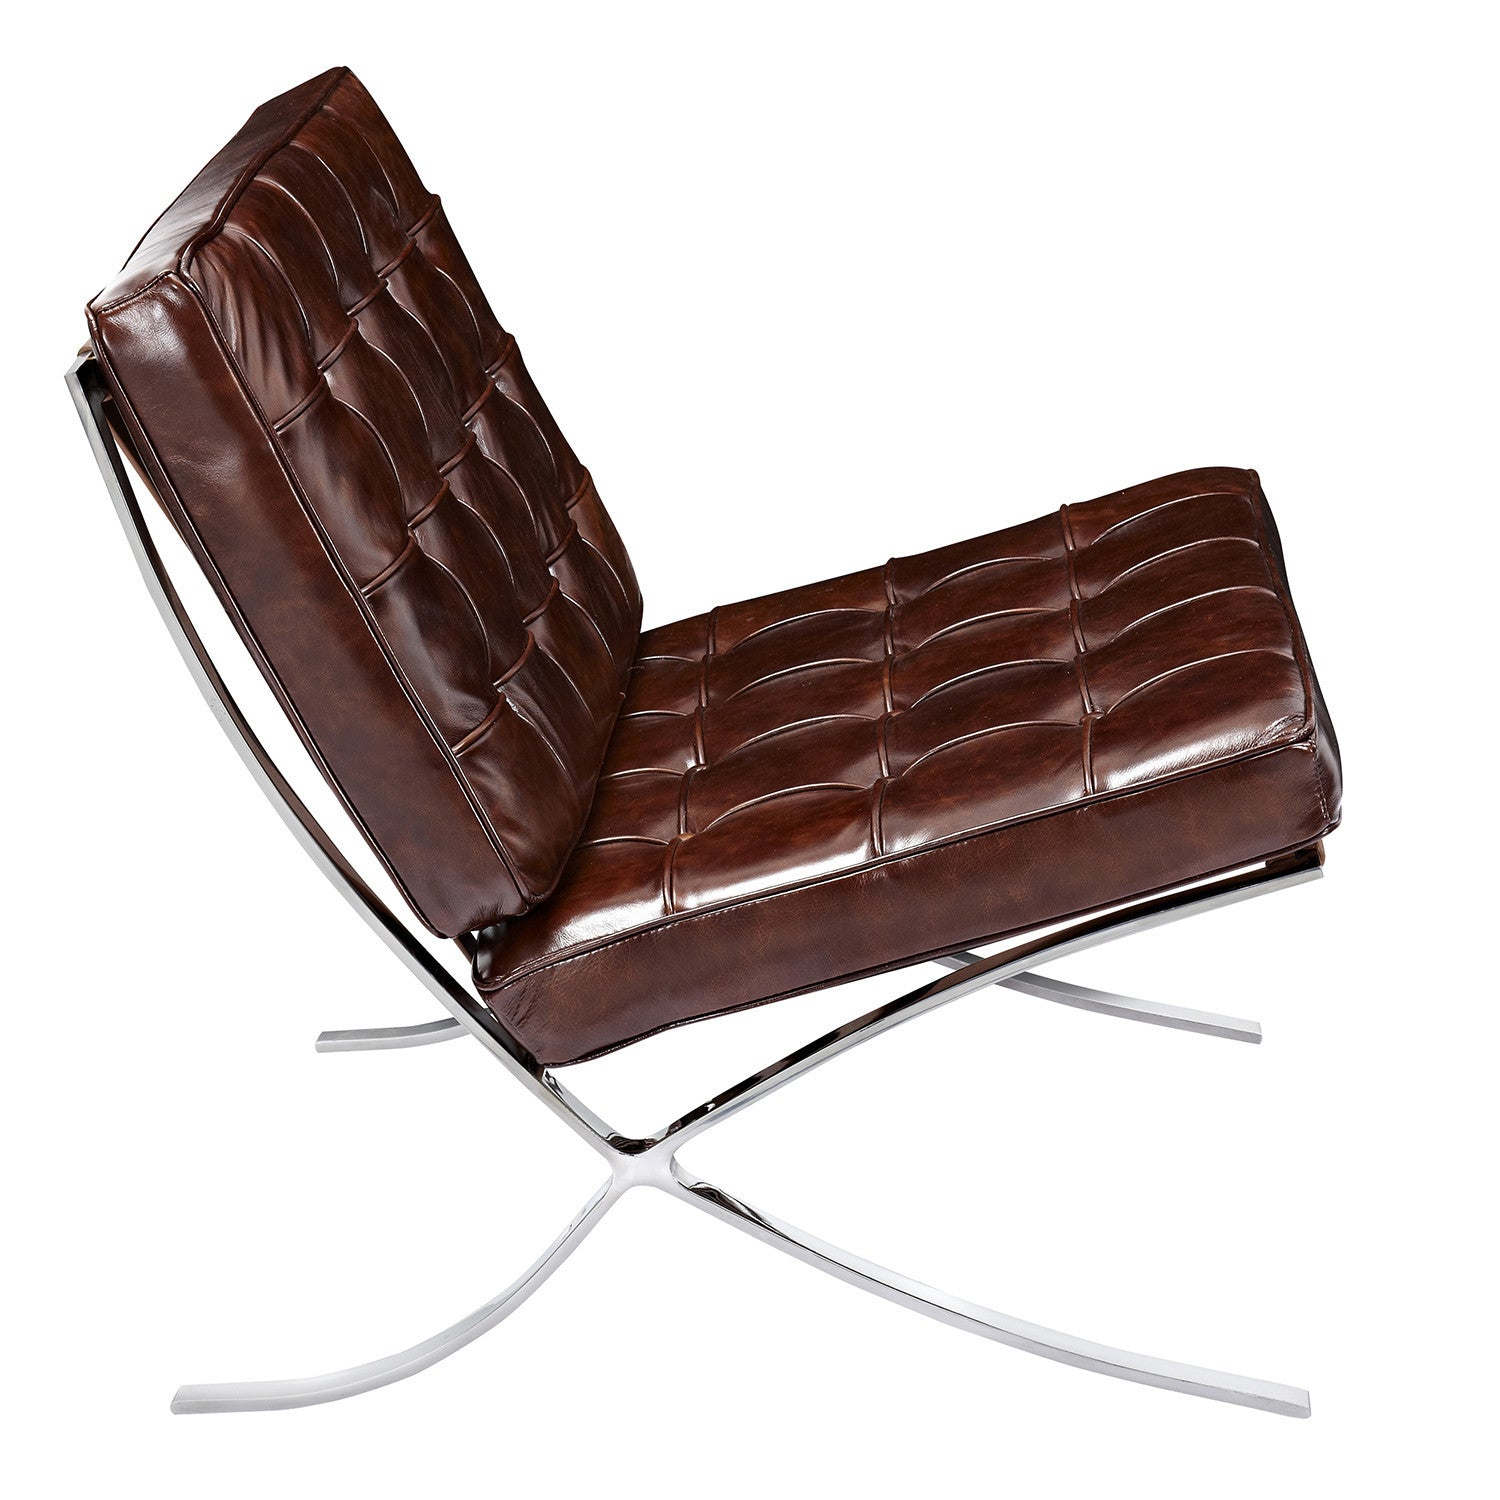 Vintage Aged Leather Barcelona Chair Replica EMFURN : 2a7f4d87e 761a 48e1 b7a6 b878644149d7 from emfurn.com size 1500 x 1500 jpeg 234kB